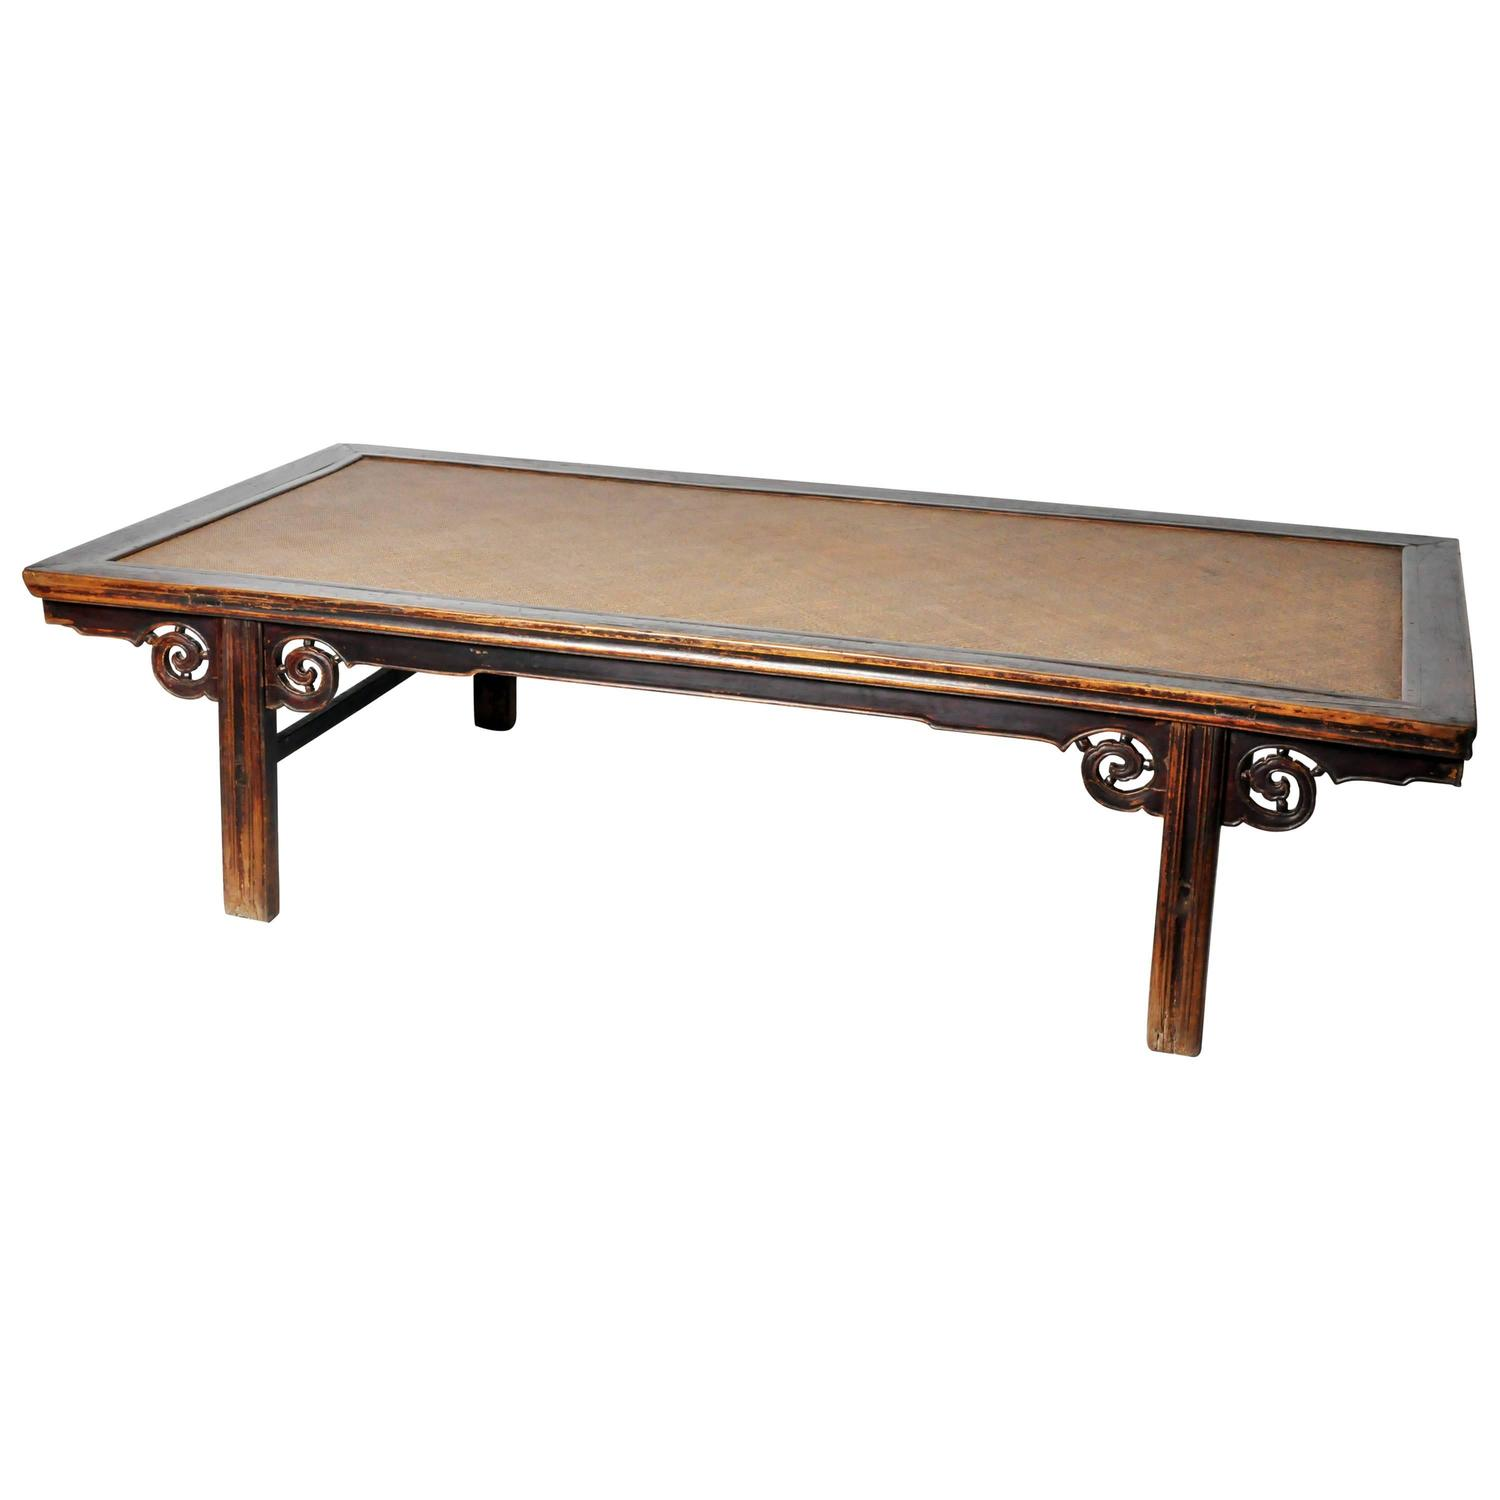 chinese kang table or daybed at 1stdibs